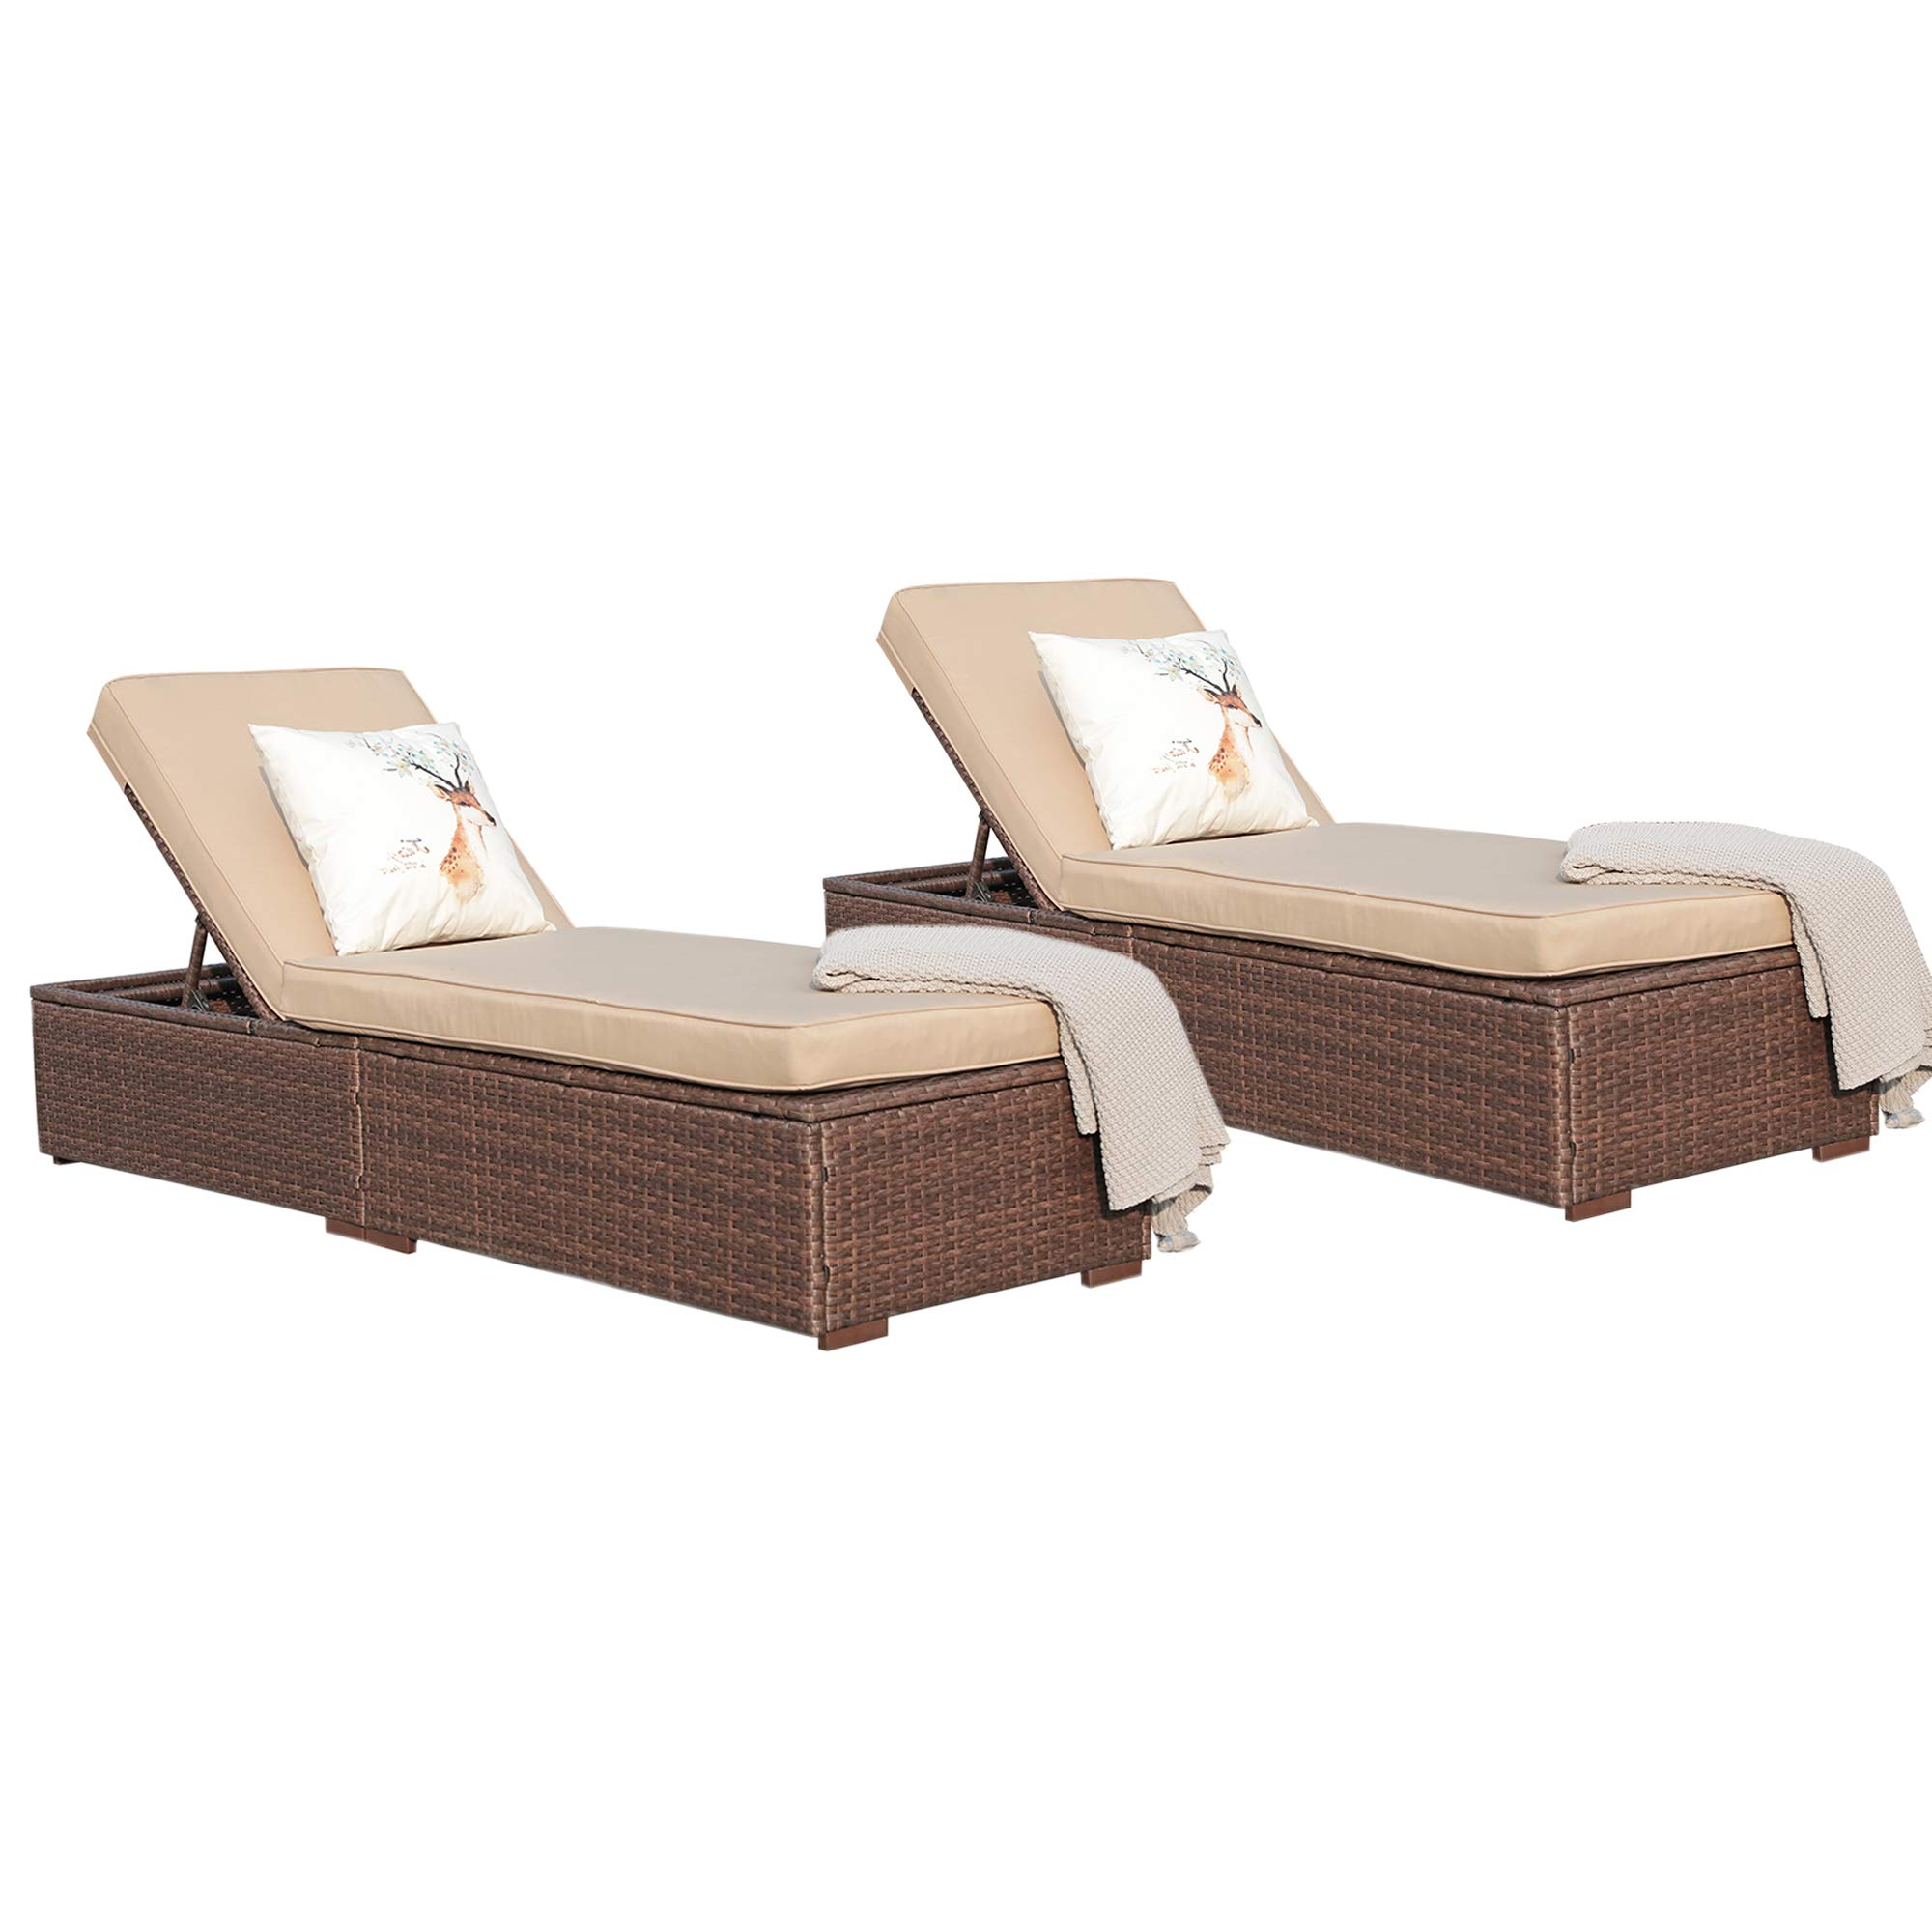 Super Patio Outdoor Adjustable Pool Wicker Rattan Chaise Lounge Chair Steel Frame, Beige Cushions, Brown PE Wicker,Set of 2 by Super Patio